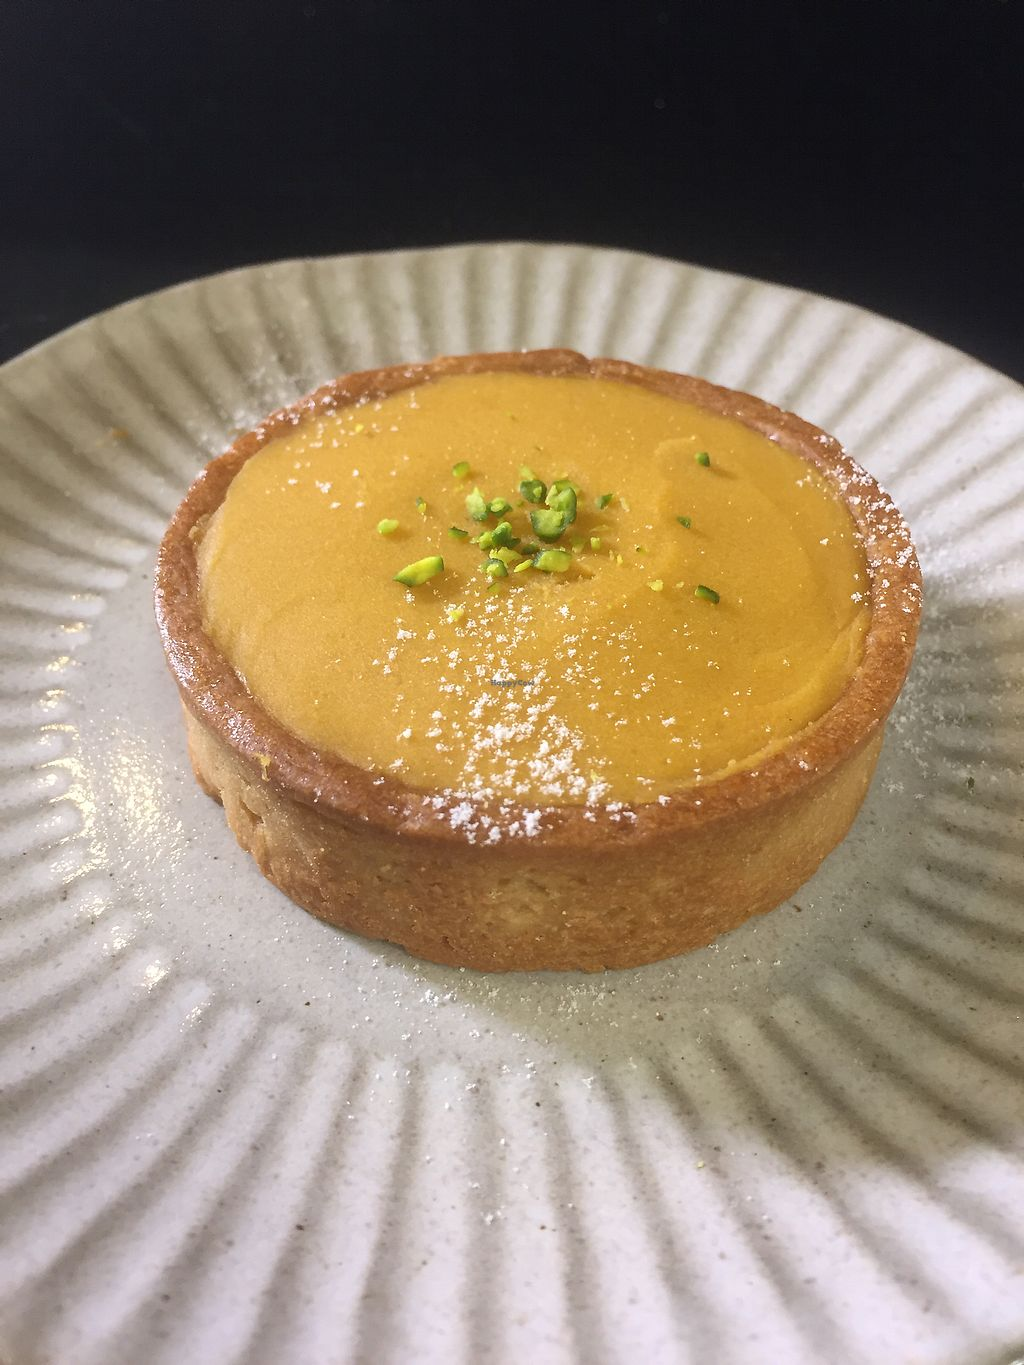 """Photo of Zhen De Coffee  by <a href=""""/members/profile/HaileyPoLa"""">HaileyPoLa</a> <br/>sweet potato tart  <br/> July 11, 2017  - <a href='/contact/abuse/image/95386/279100'>Report</a>"""